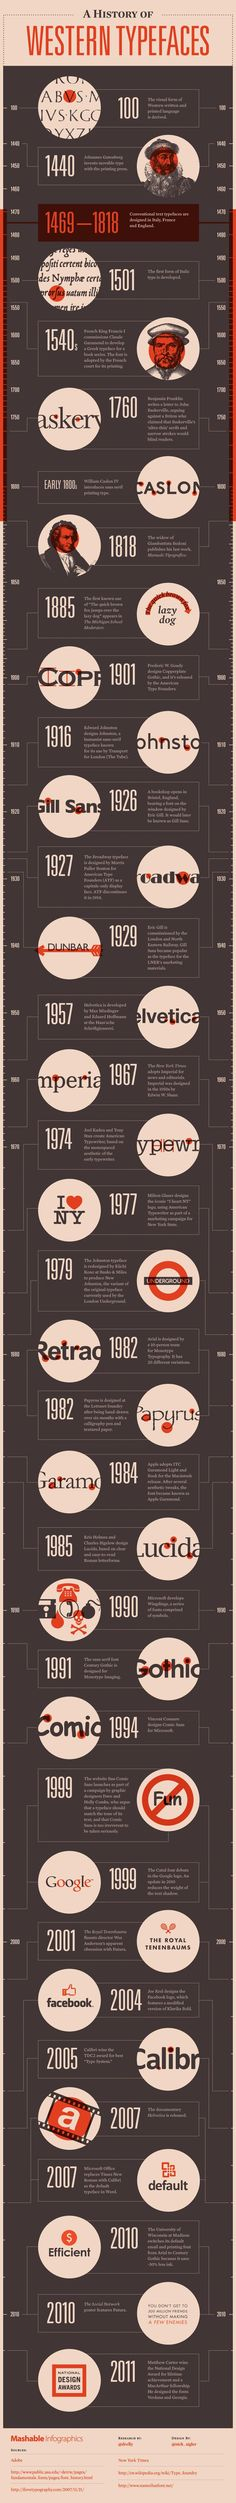 A History of Western Typefaces